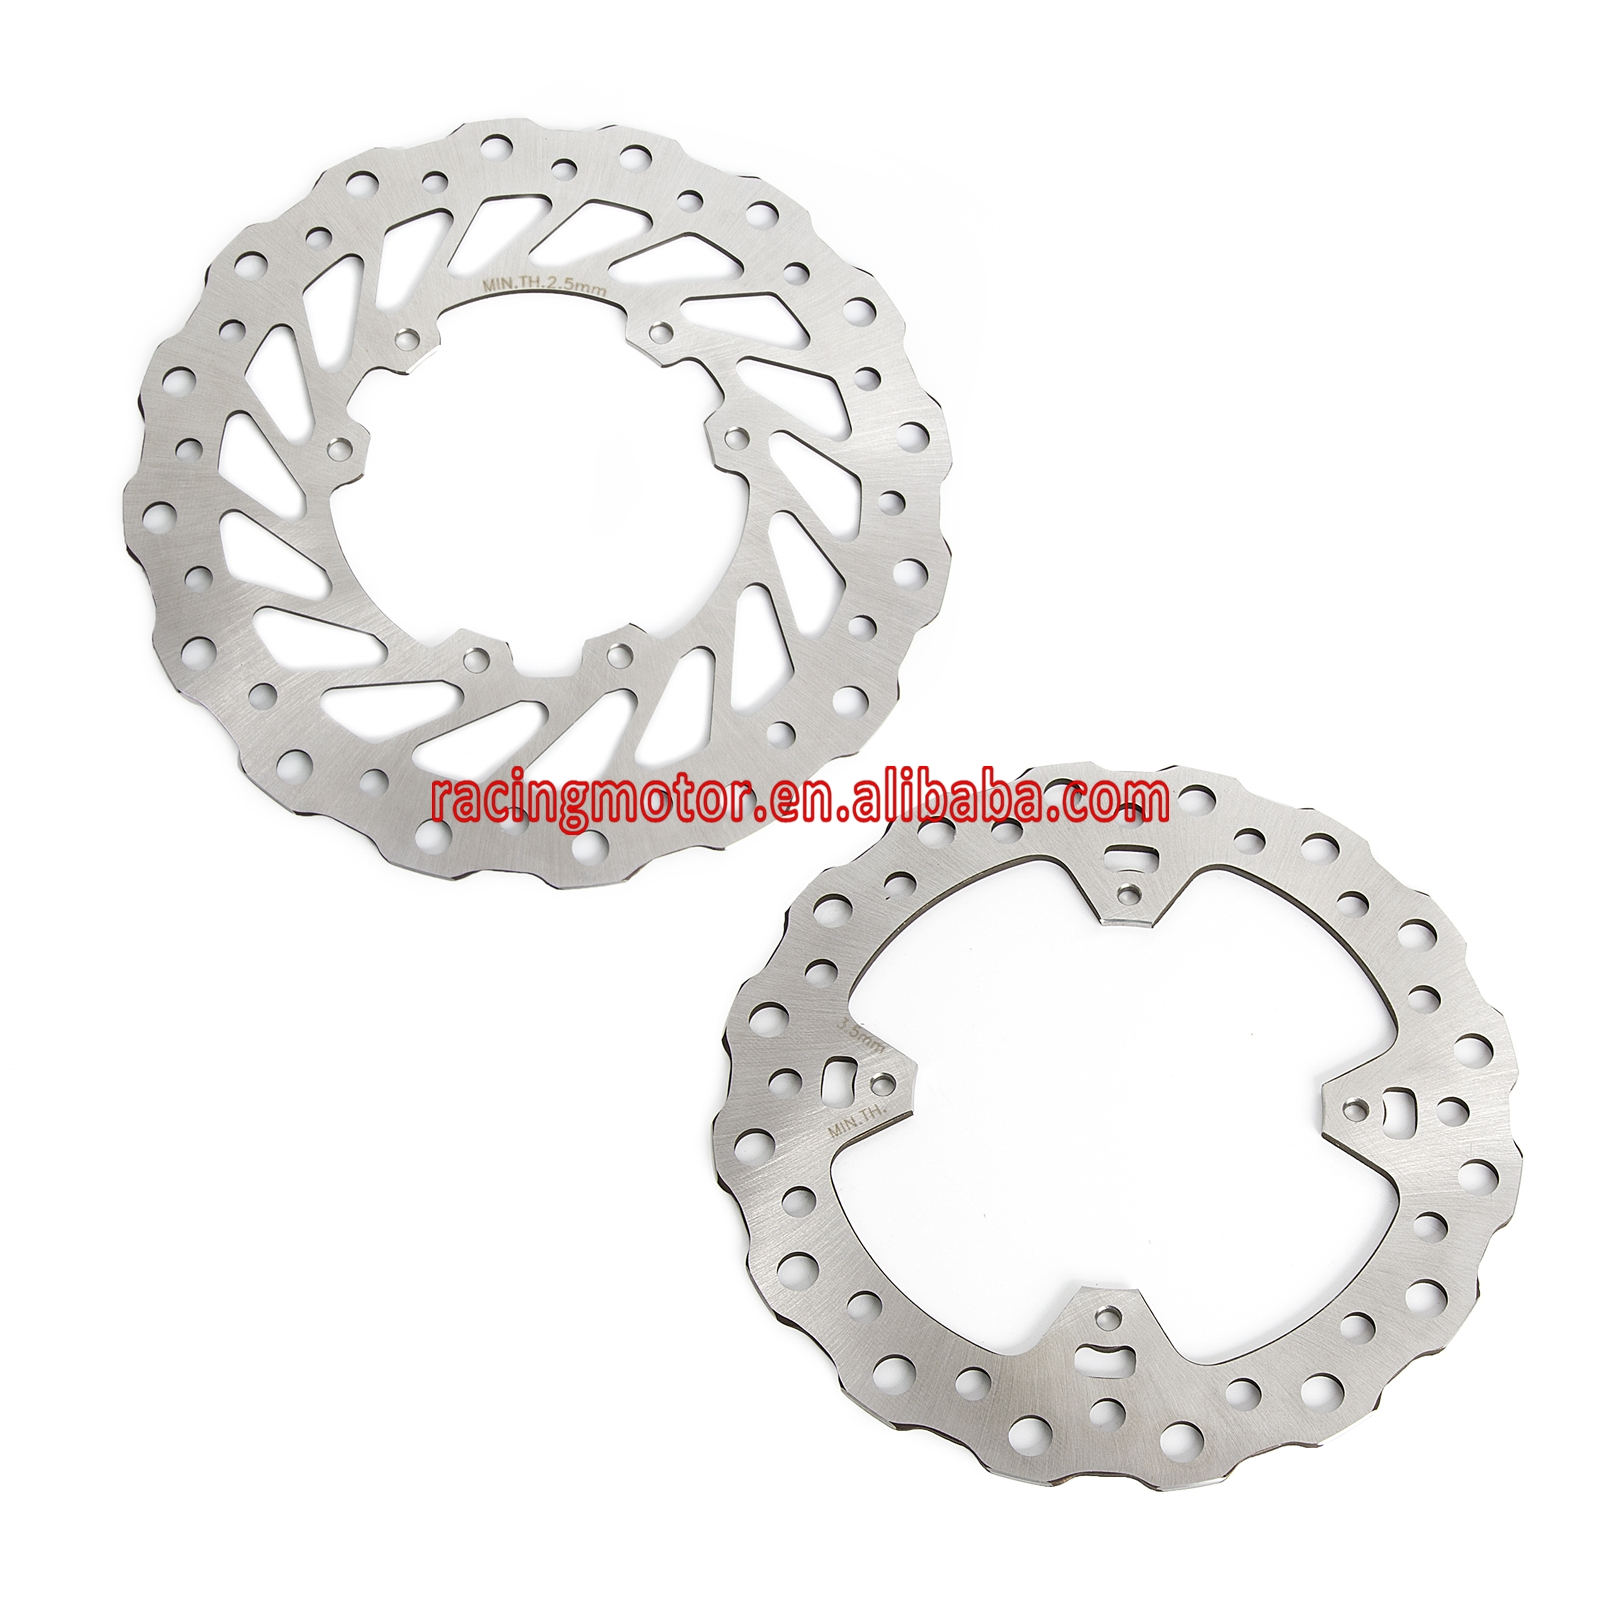 Motorcycle Front & Rear Wave Disc Brake Rotor for Honda CR125R CR250R 02-08 CRF250R CRF250X 04-14 CRF450R 02-14 CRF450X 04-15 cnc offroad mx clutch brake levers for honda cr125r 04 07 cr250r crf250r 04 06 crf450r 04 06 crf250x 04 16 crf450x 05 16